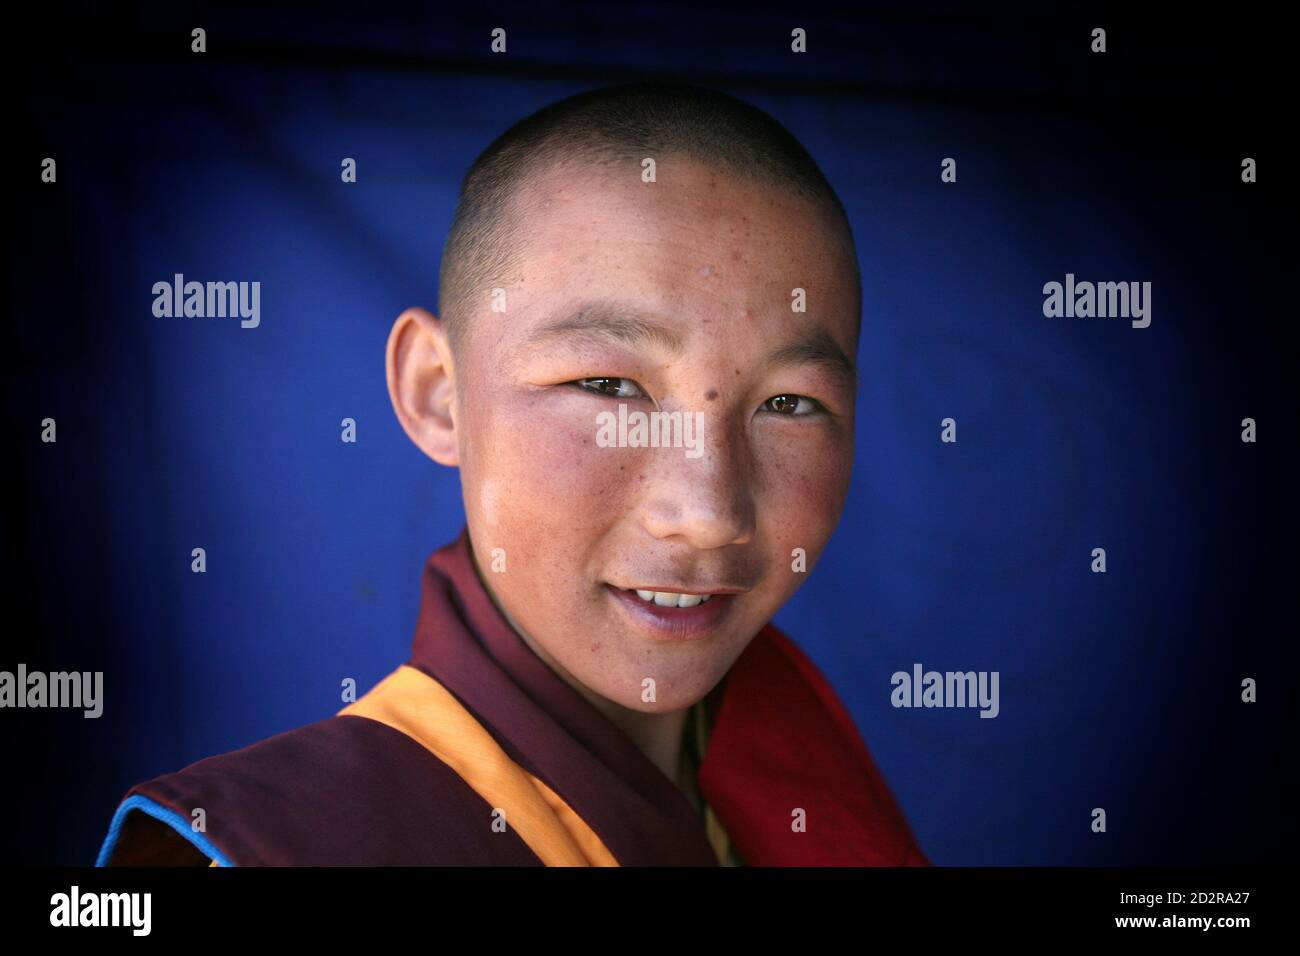 A Buddhist monk is seen at the court yard of Erdene Zeu monastery in Kharahorin, some 380 km (236 miles) west of Ulan Bator, July 8, 2006. The Erdene Zeu monastery was ransacked during the Stalinist period, and worship was forbidden throughout the Communist era, but Buddhism is experiencing a revival since Mongolia overthrew decades of Soviet dominance in 1991. Stock Photo